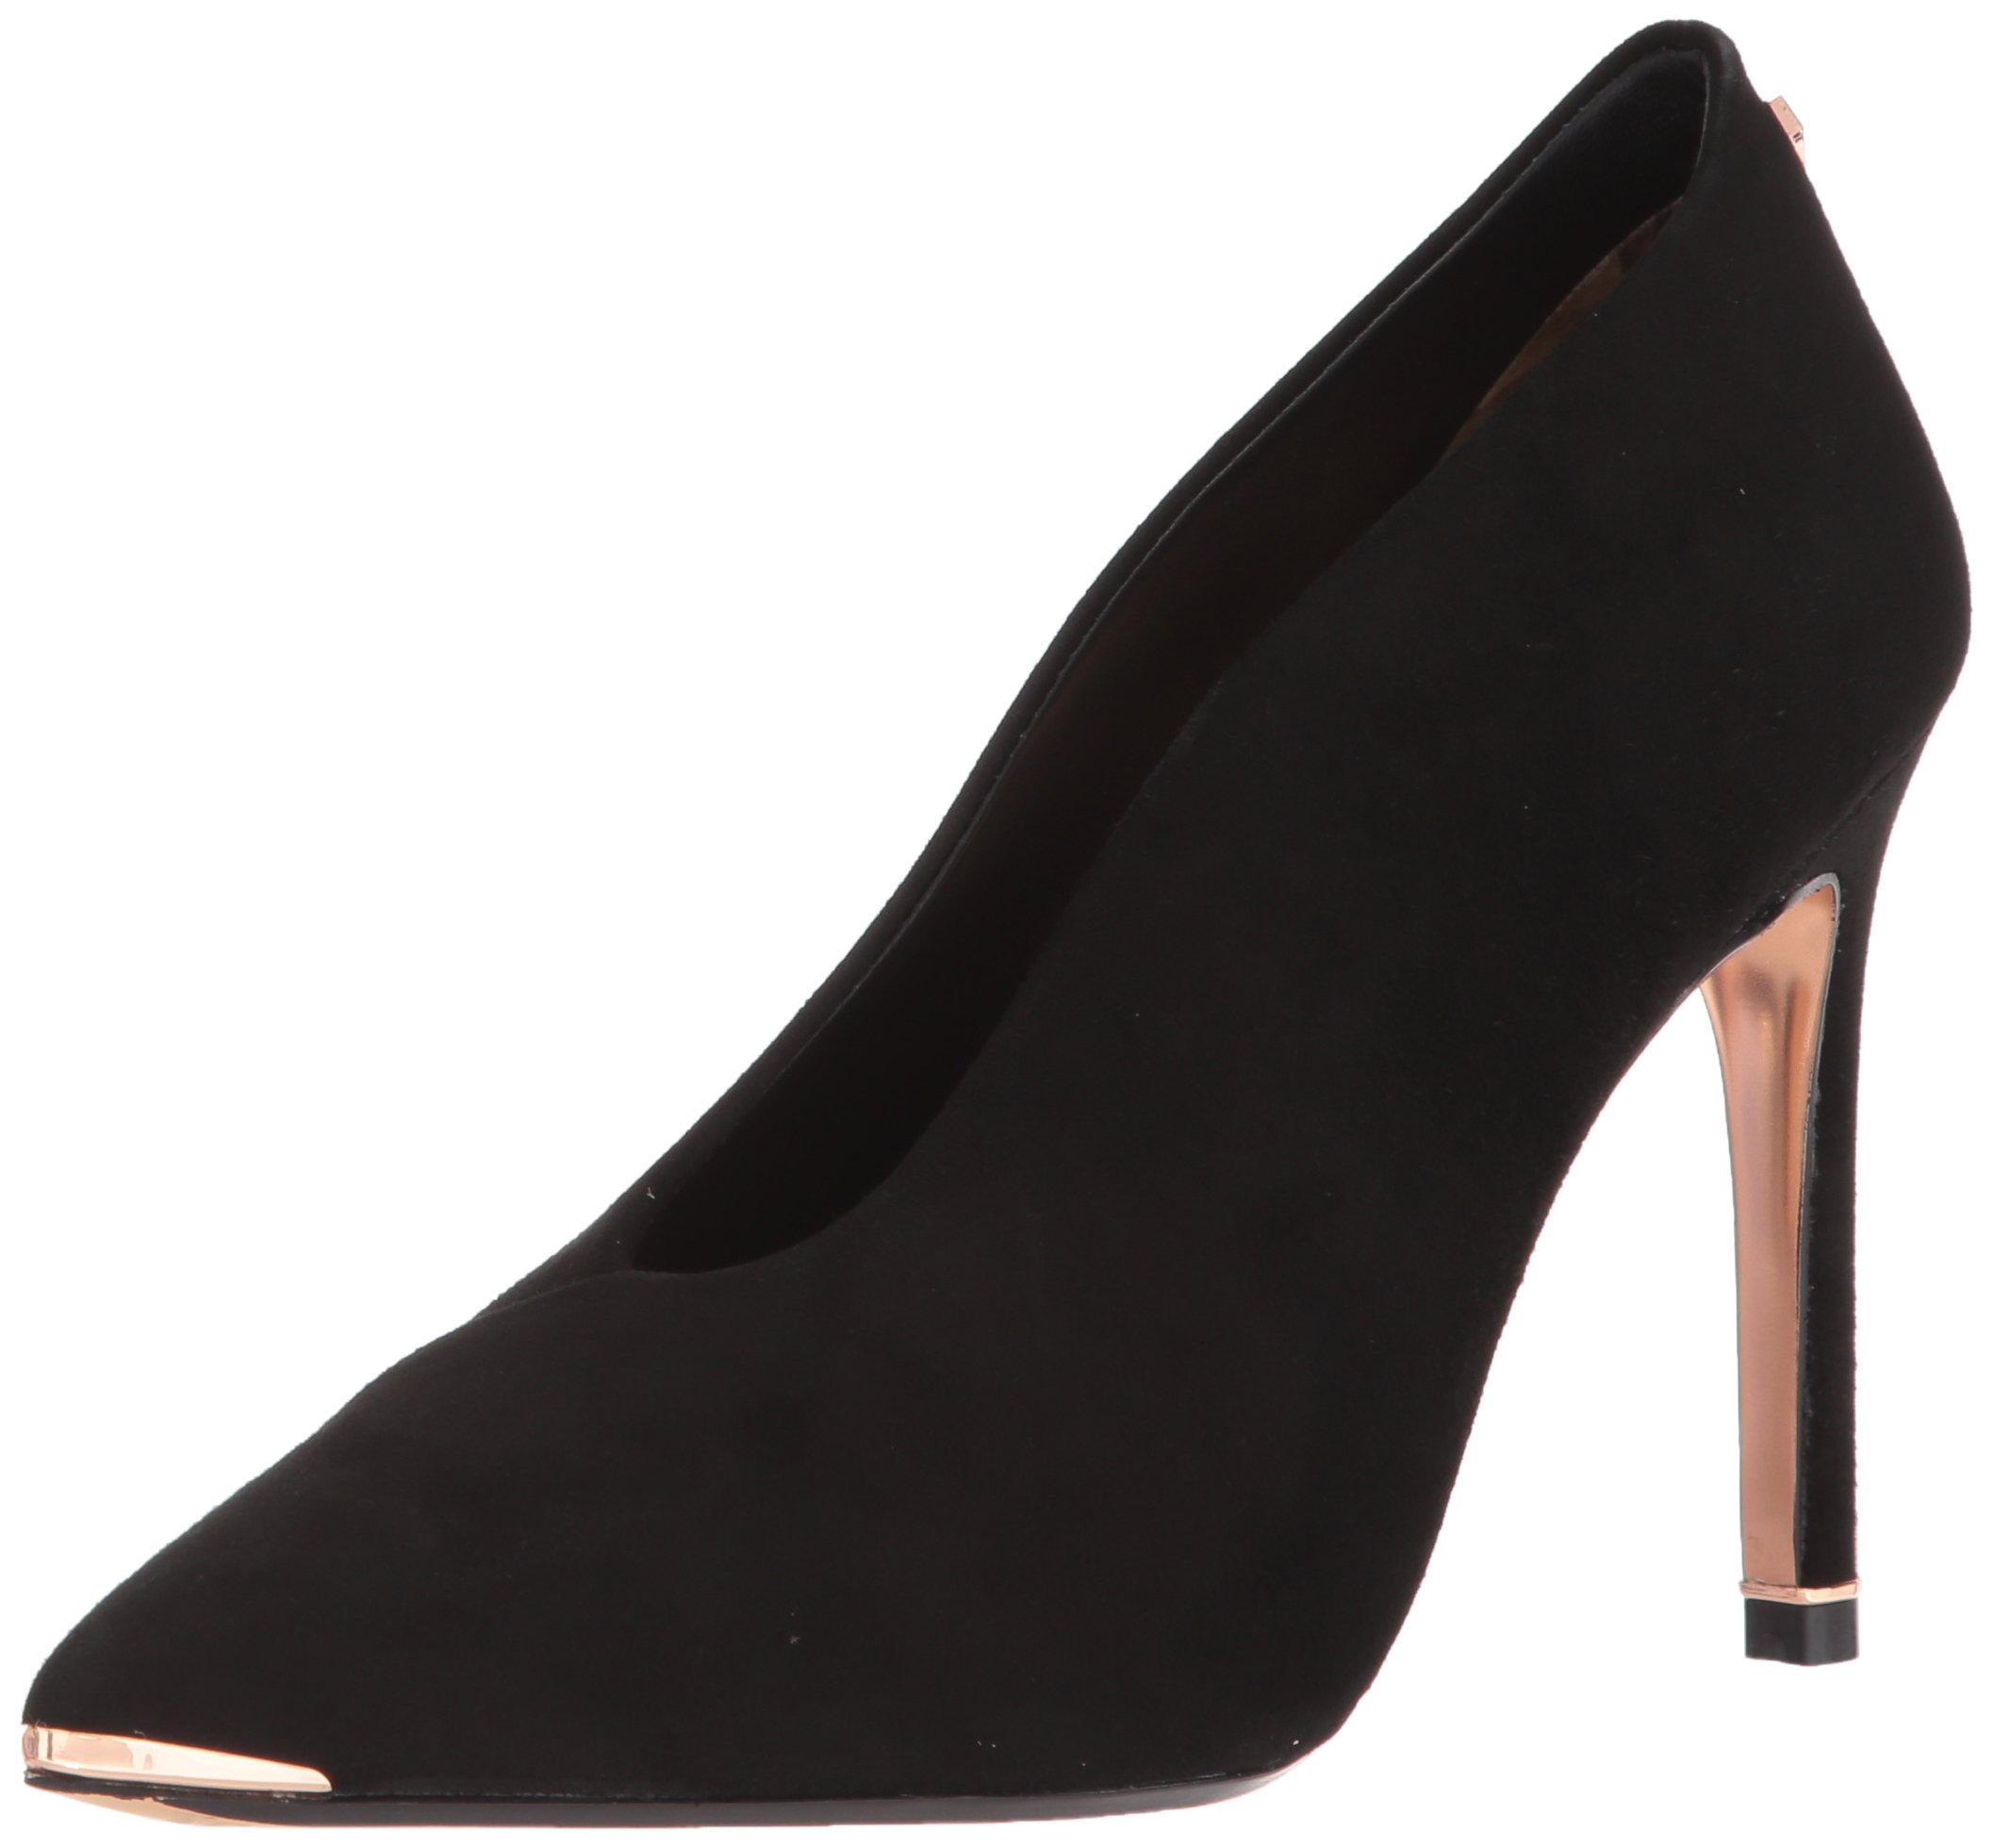 Ted Baker Women's Bexz Pump, Black Suede, 6 B(M) US